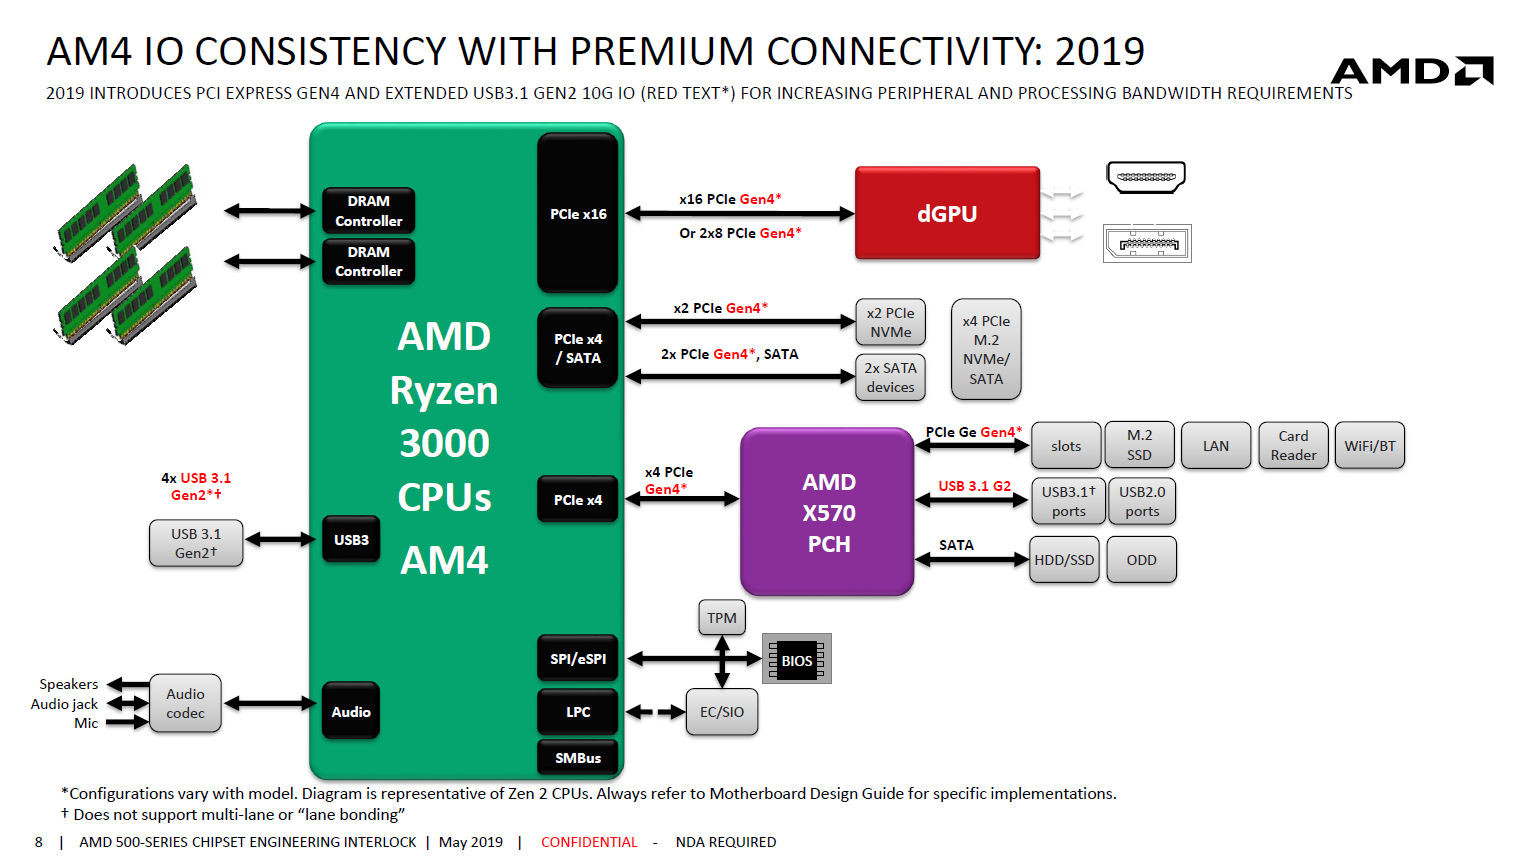 hight resolution of update may 21st there is also information on the x570 chipset s tdp update may 23rd hkepc posted what looks like an official amd slide with a